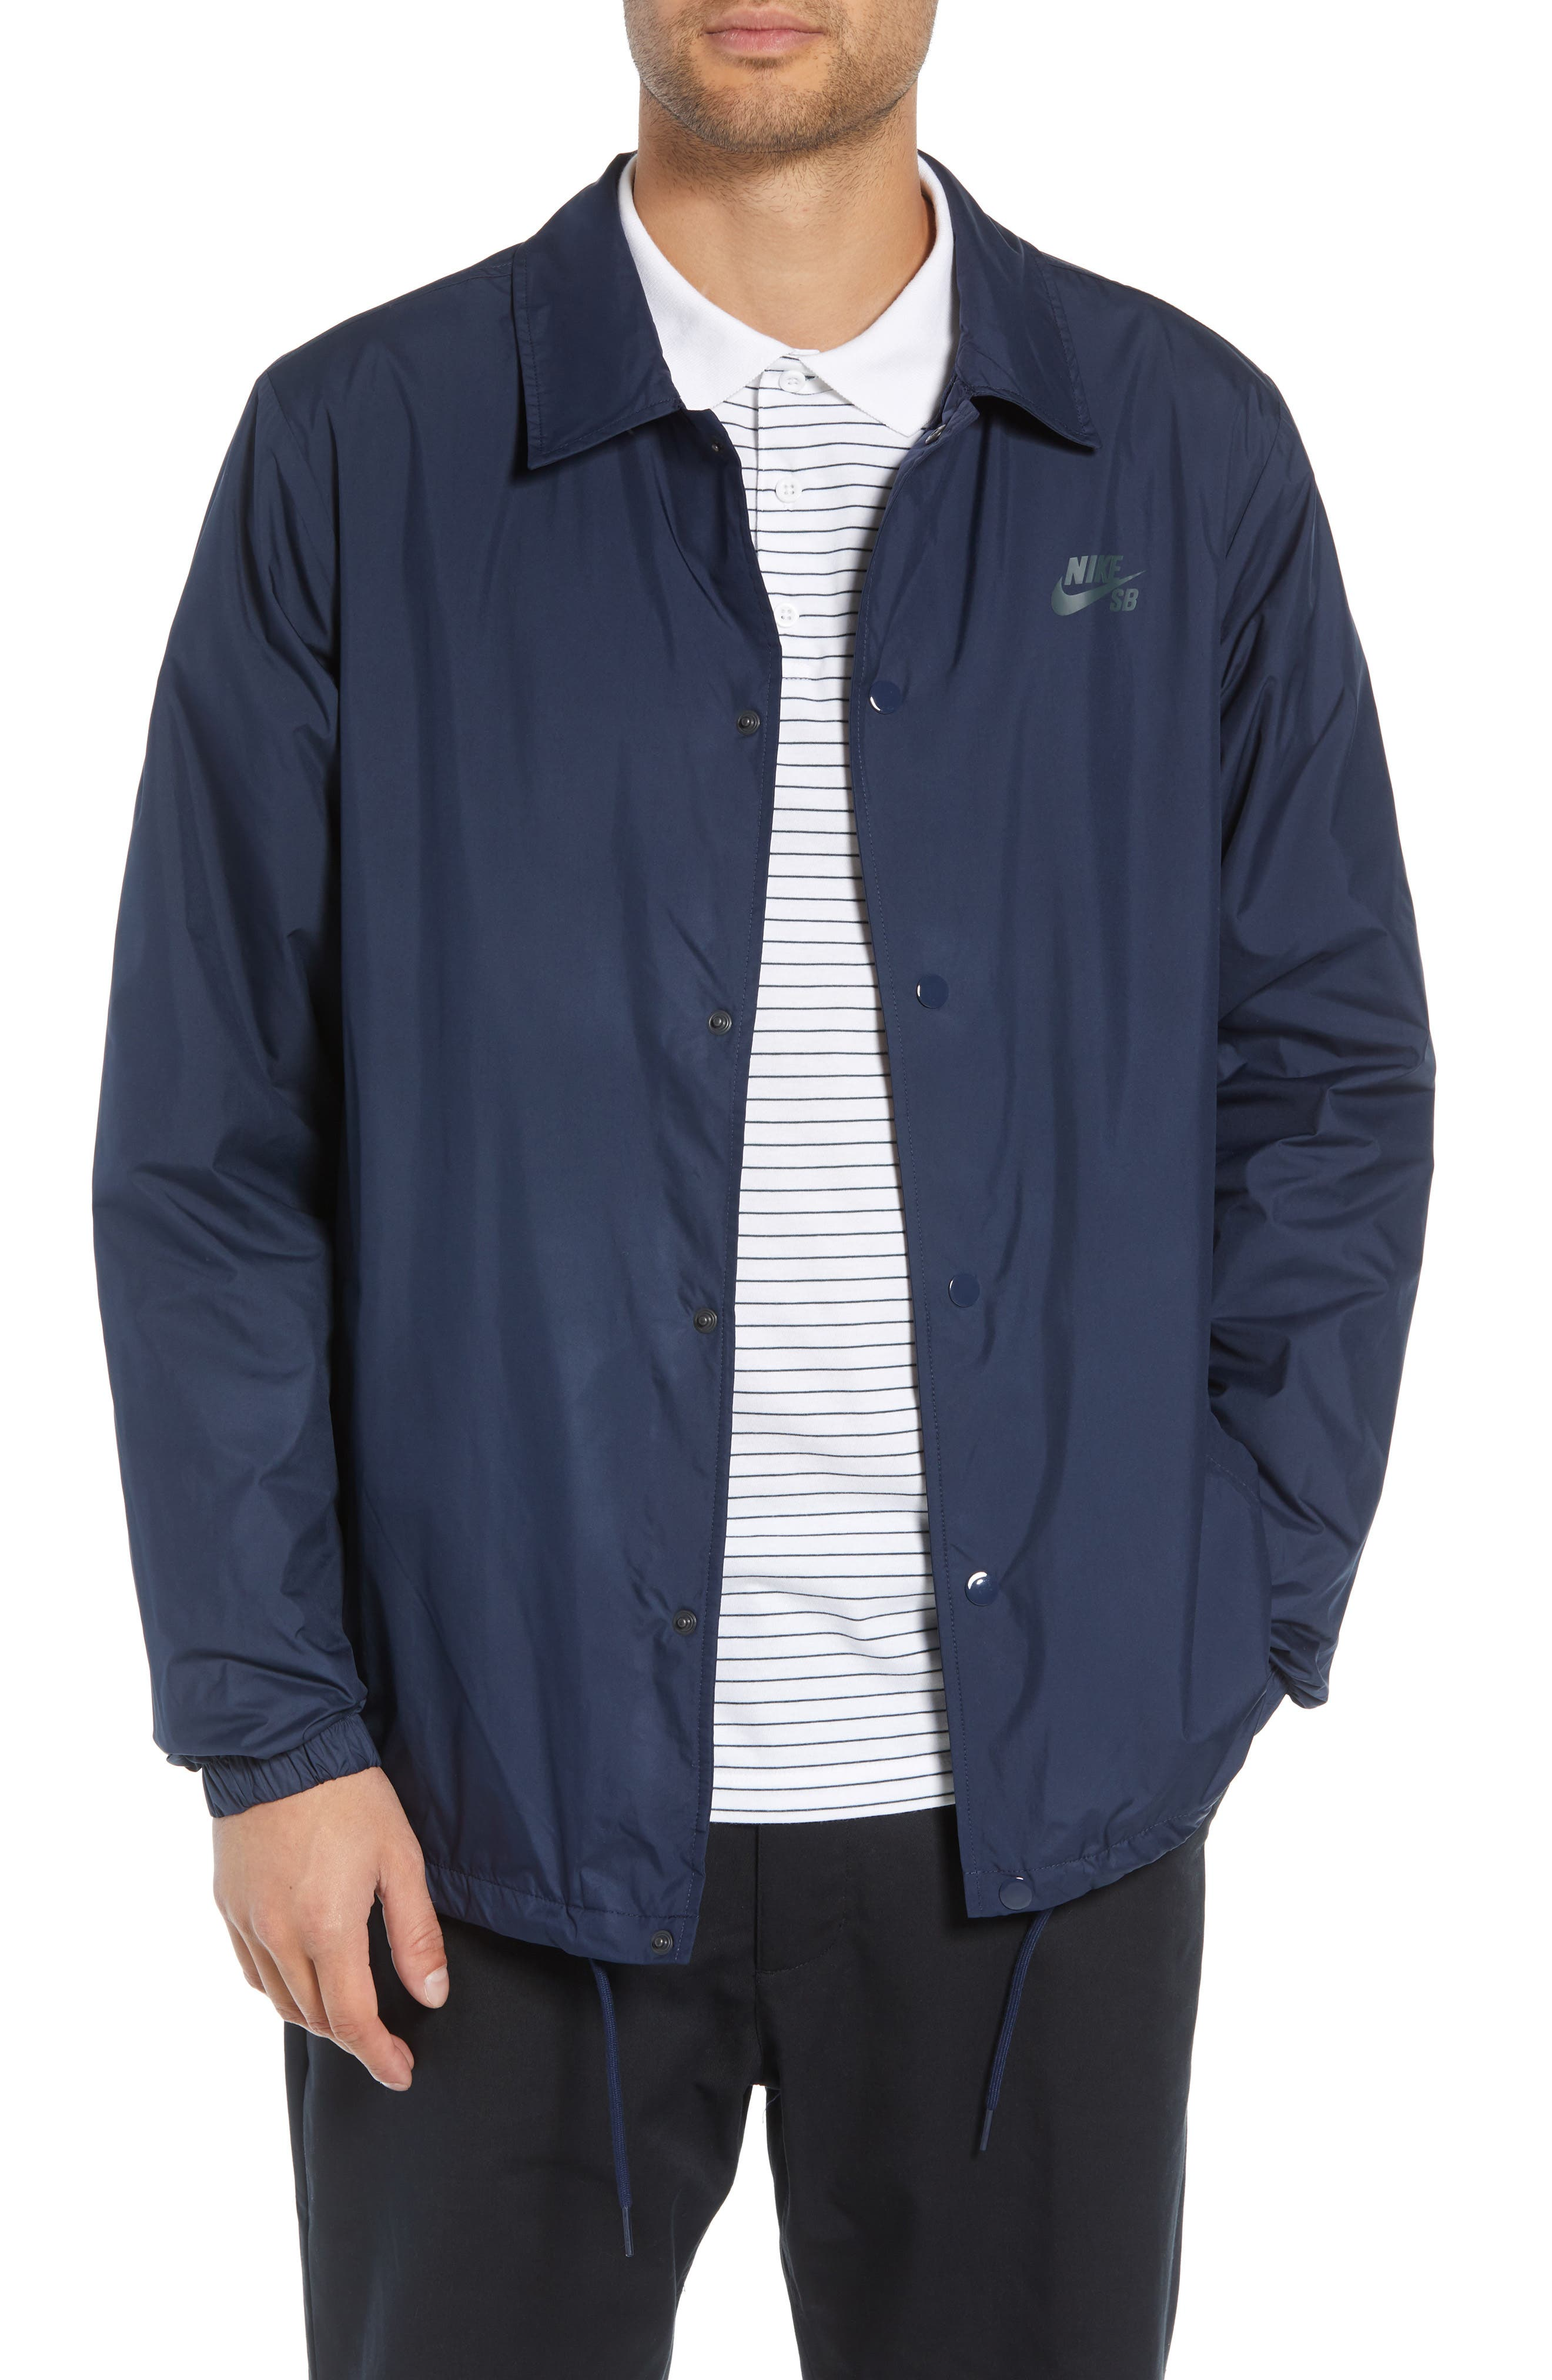 SB Shield Coach's Jacket,                         Main,                         color, OBSIDIAN/ ANTHRACITE